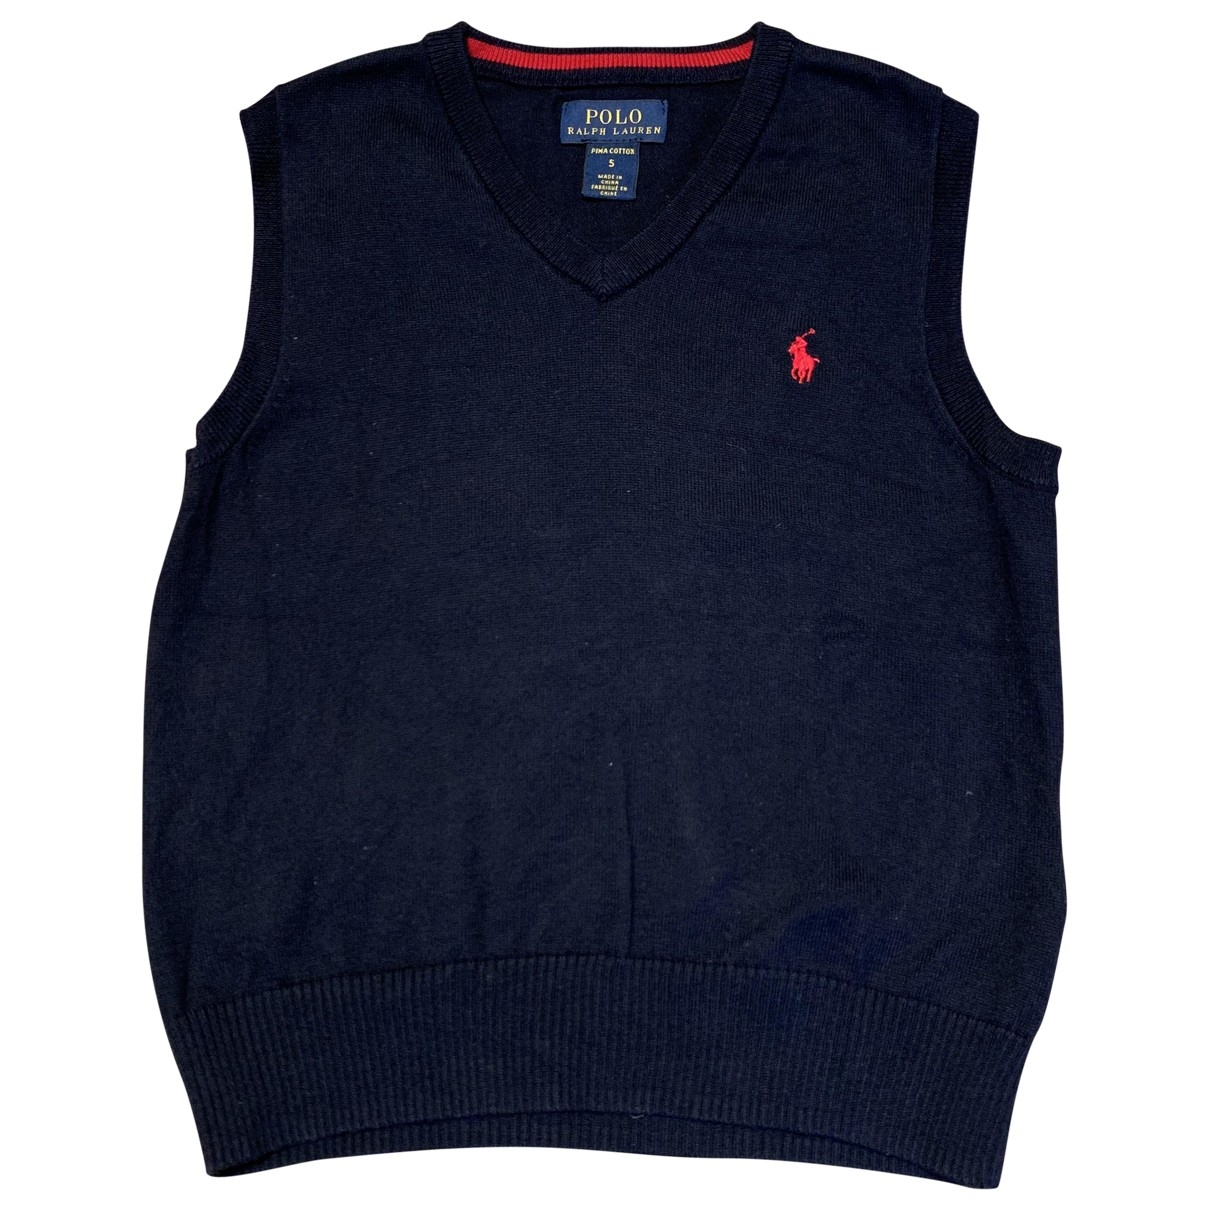 Polo Ralph Lauren \N Navy Cotton Knitwear for Kids 5 years - up to 108cm FR